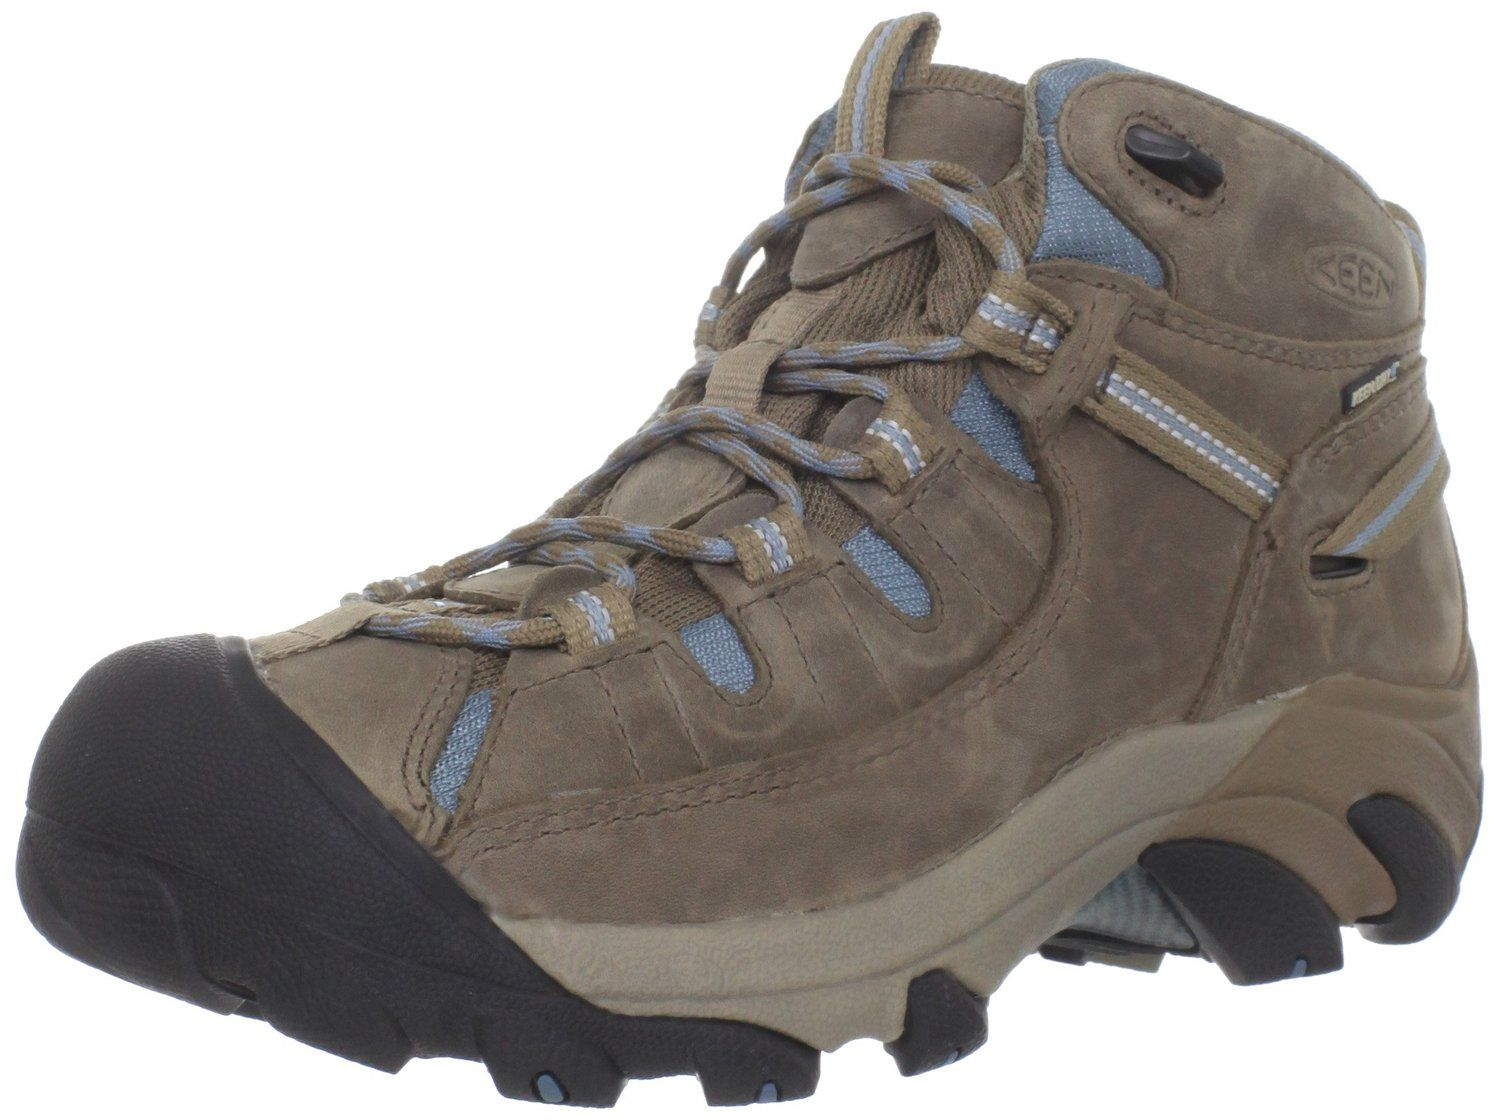 KEEN Womens Targhee II Mid Waterproof Hiking Boot,Gargoyle//Caribbean Sea,6 M US